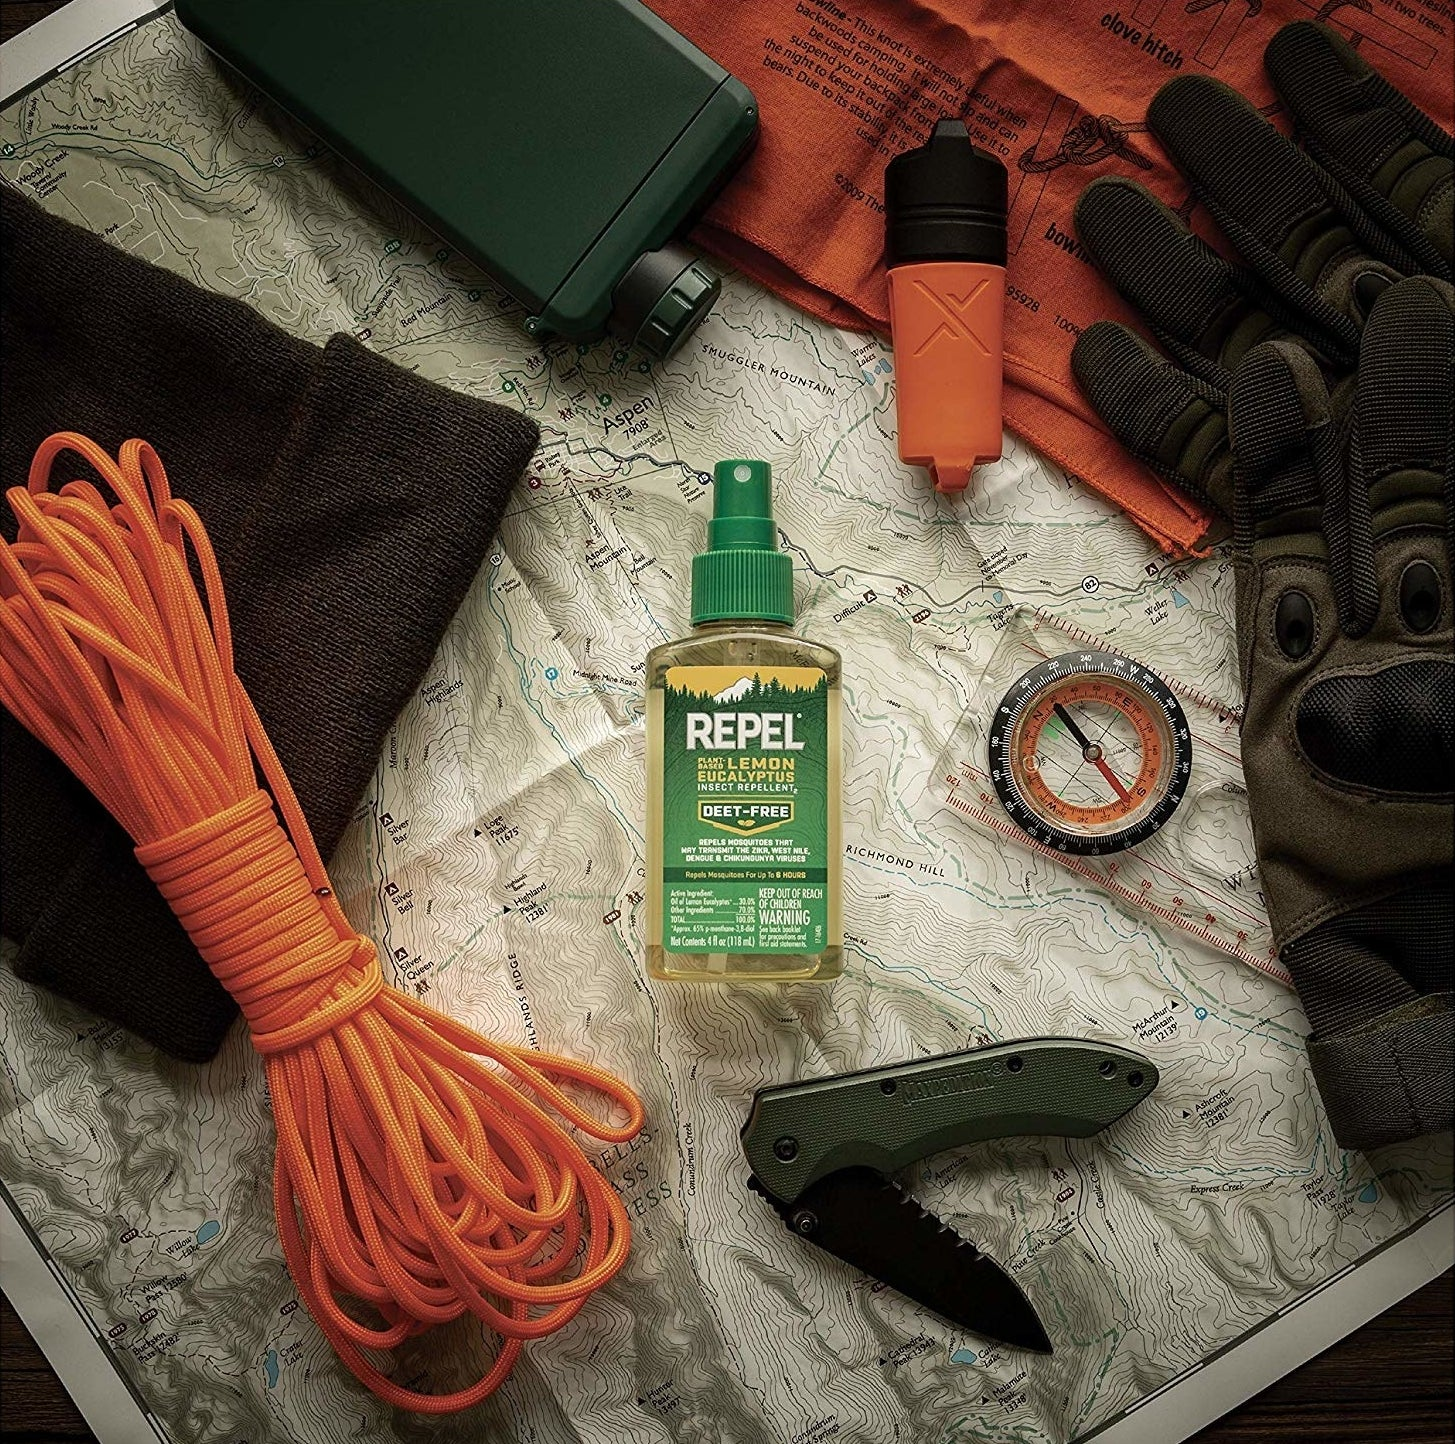 the spray on a map surrounded by other camping supplies like a compass and pocket knife